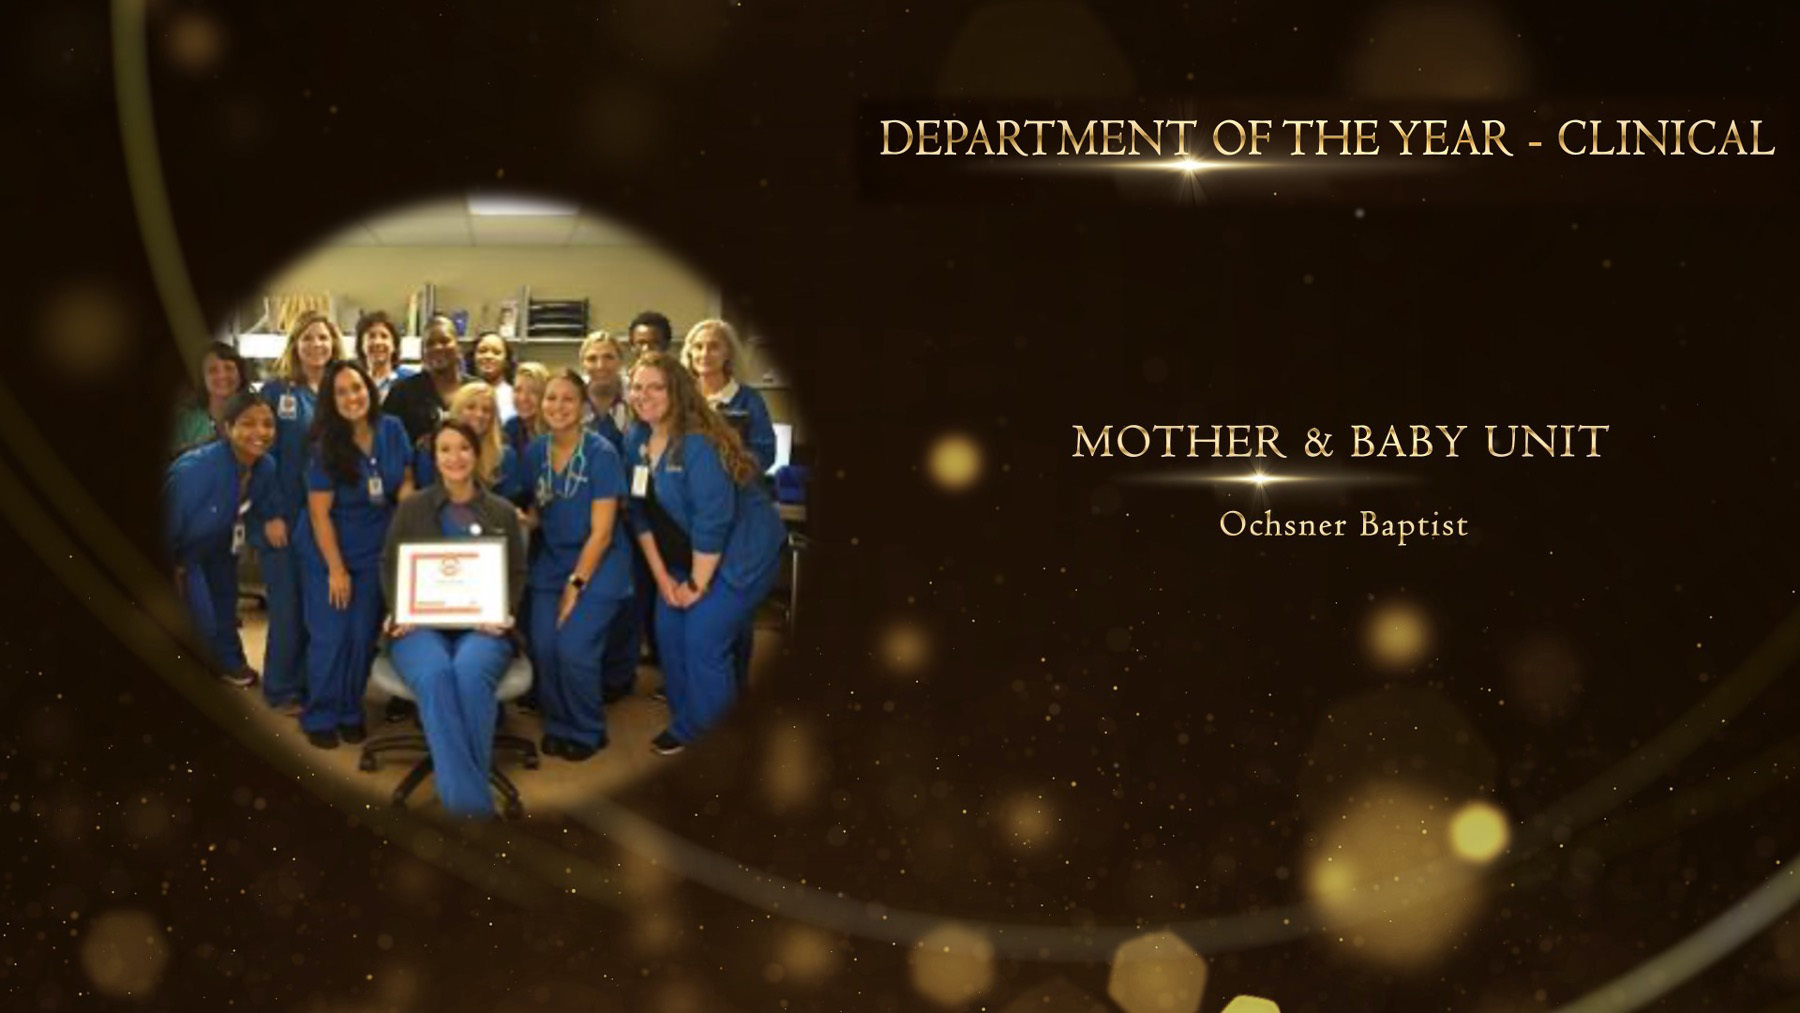 Departmentof The Year M Otherbaby